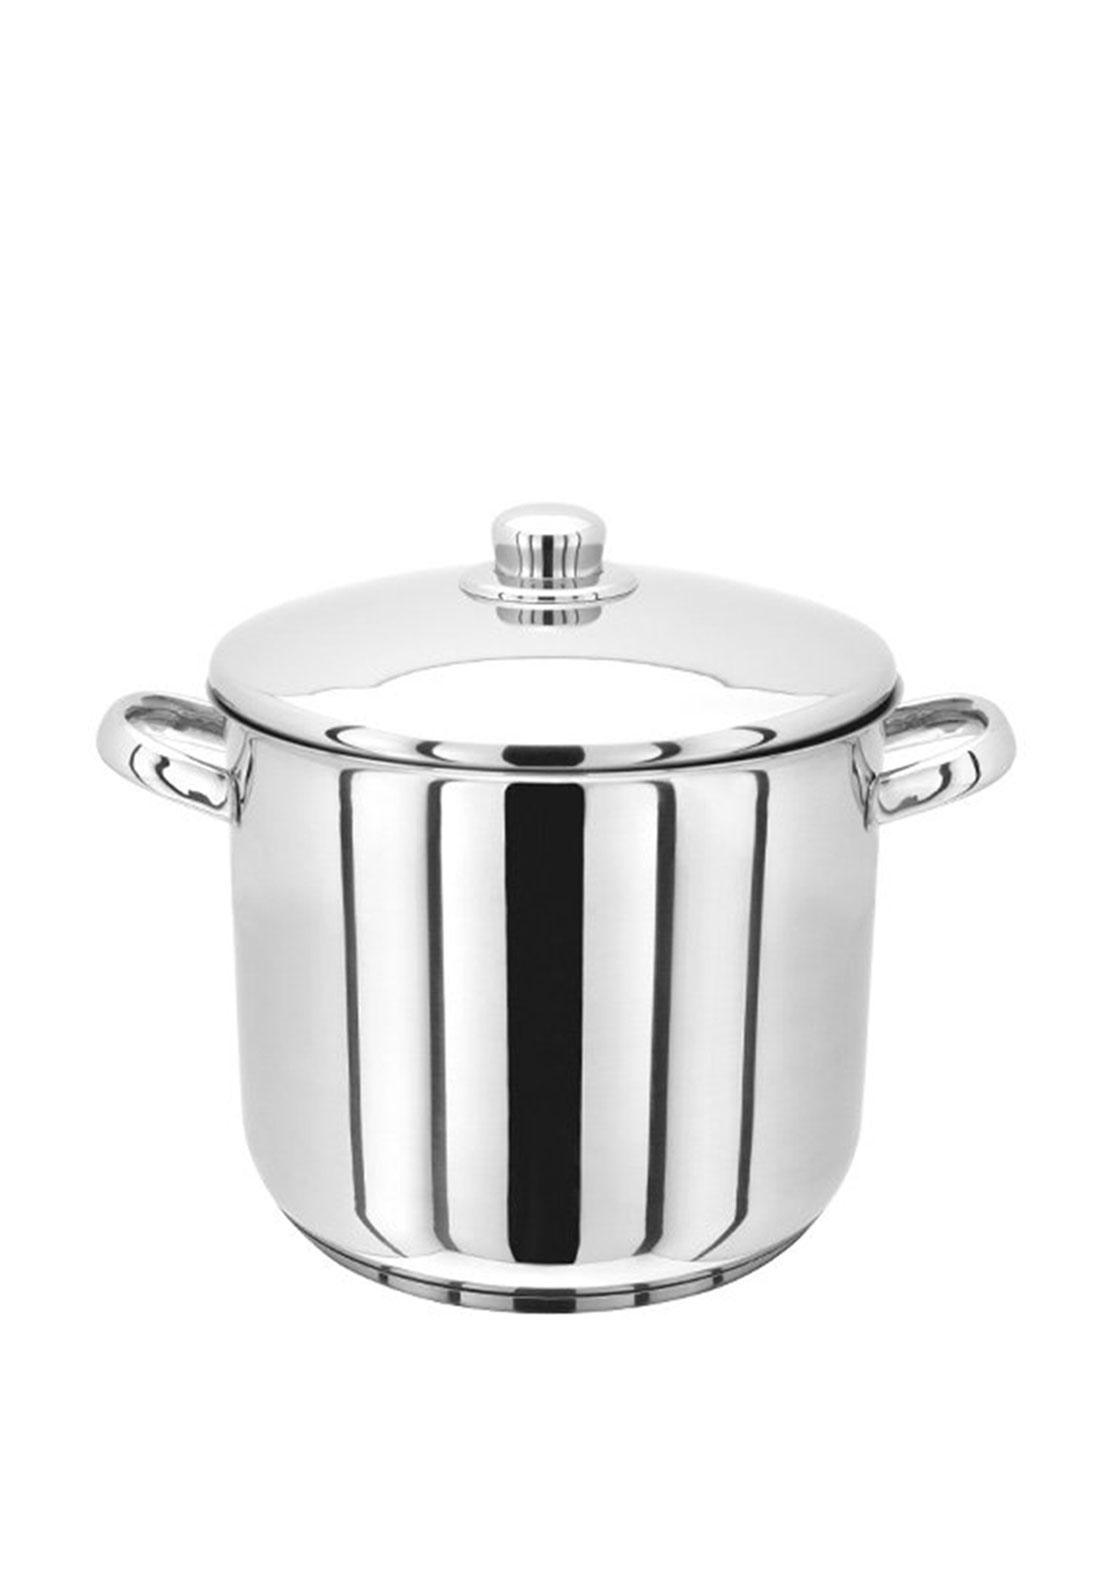 Judge 26cm Stockpot 10.5L